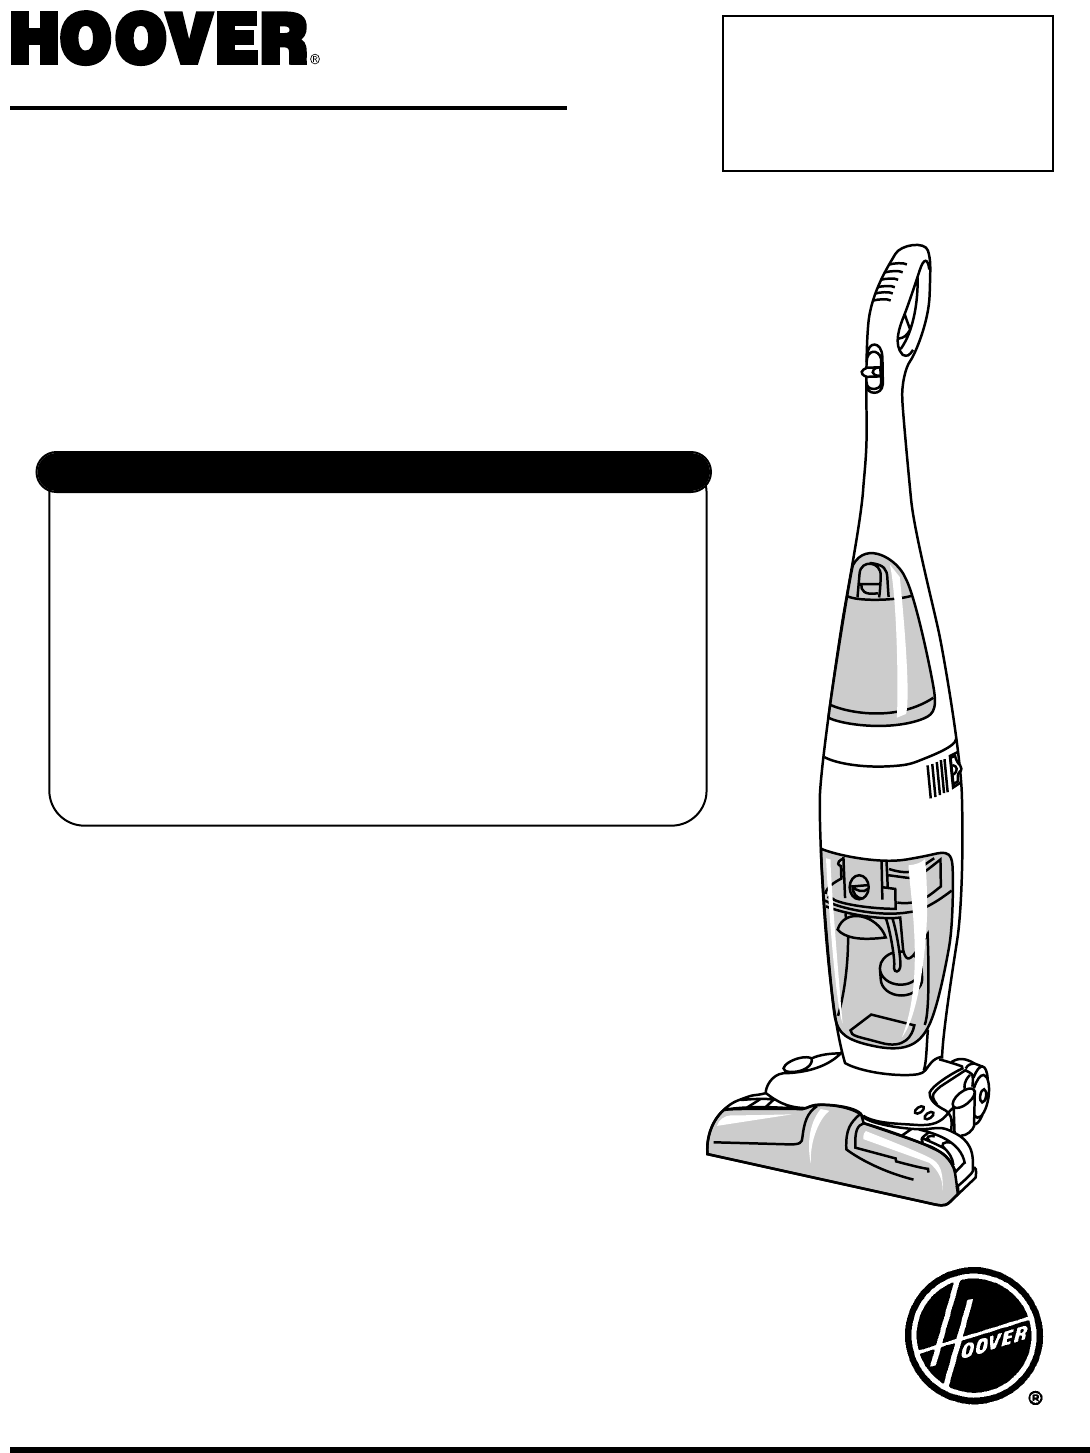 Hoover Floormate Floor Cleaner Manual 28 Images